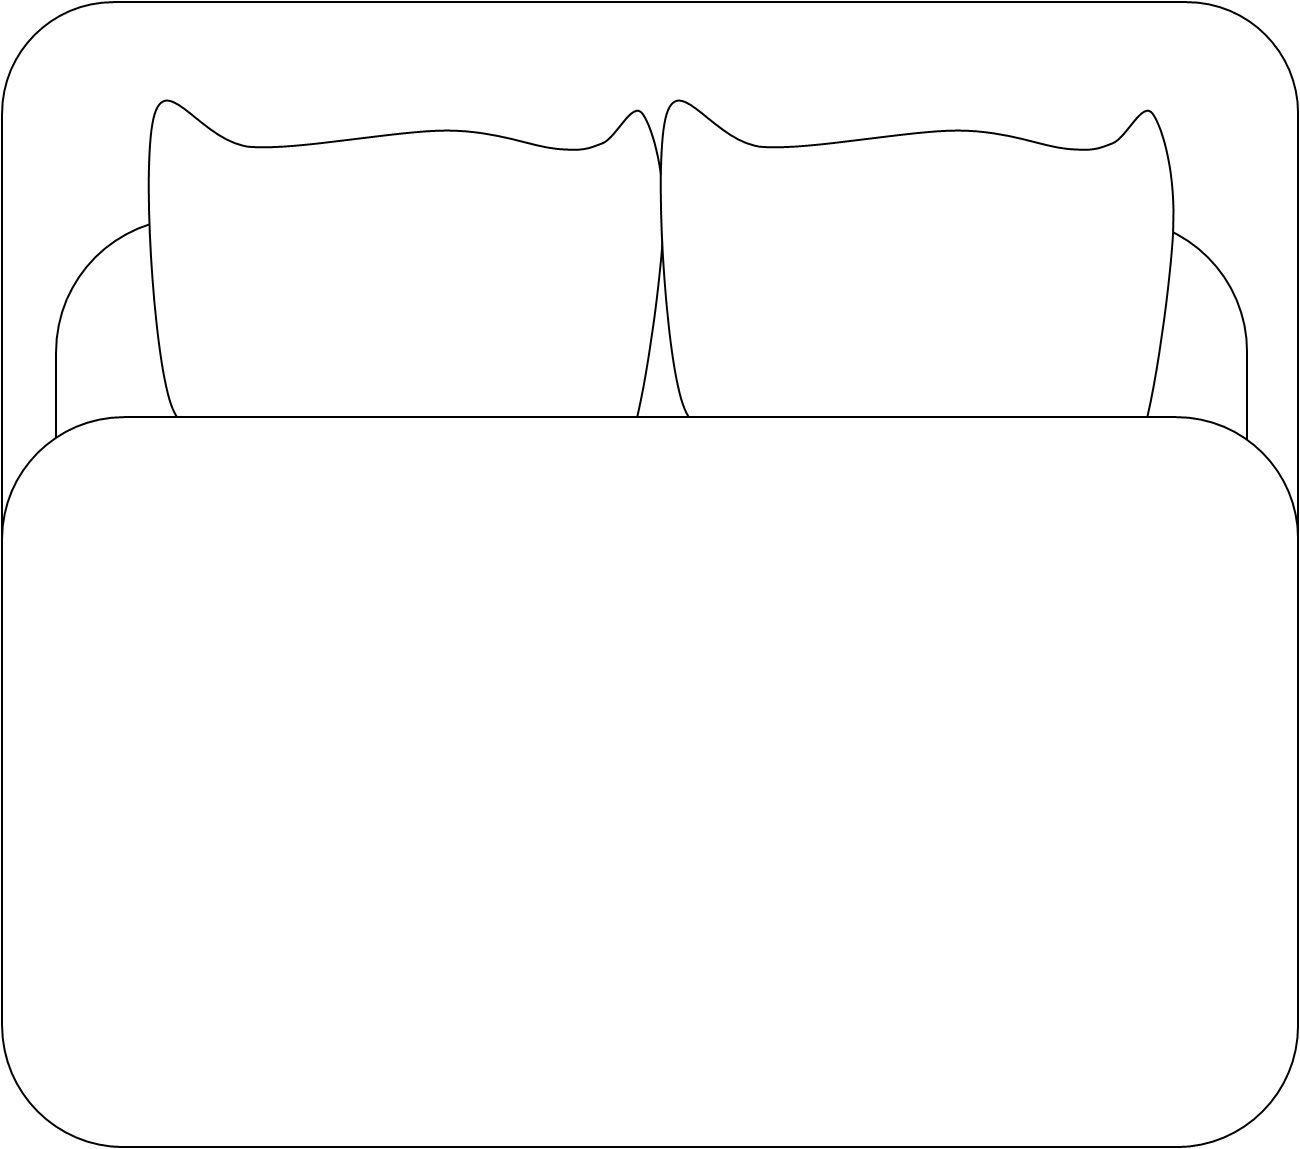 Bed Bw | Free Images at Clker.com - vector clip art online ...